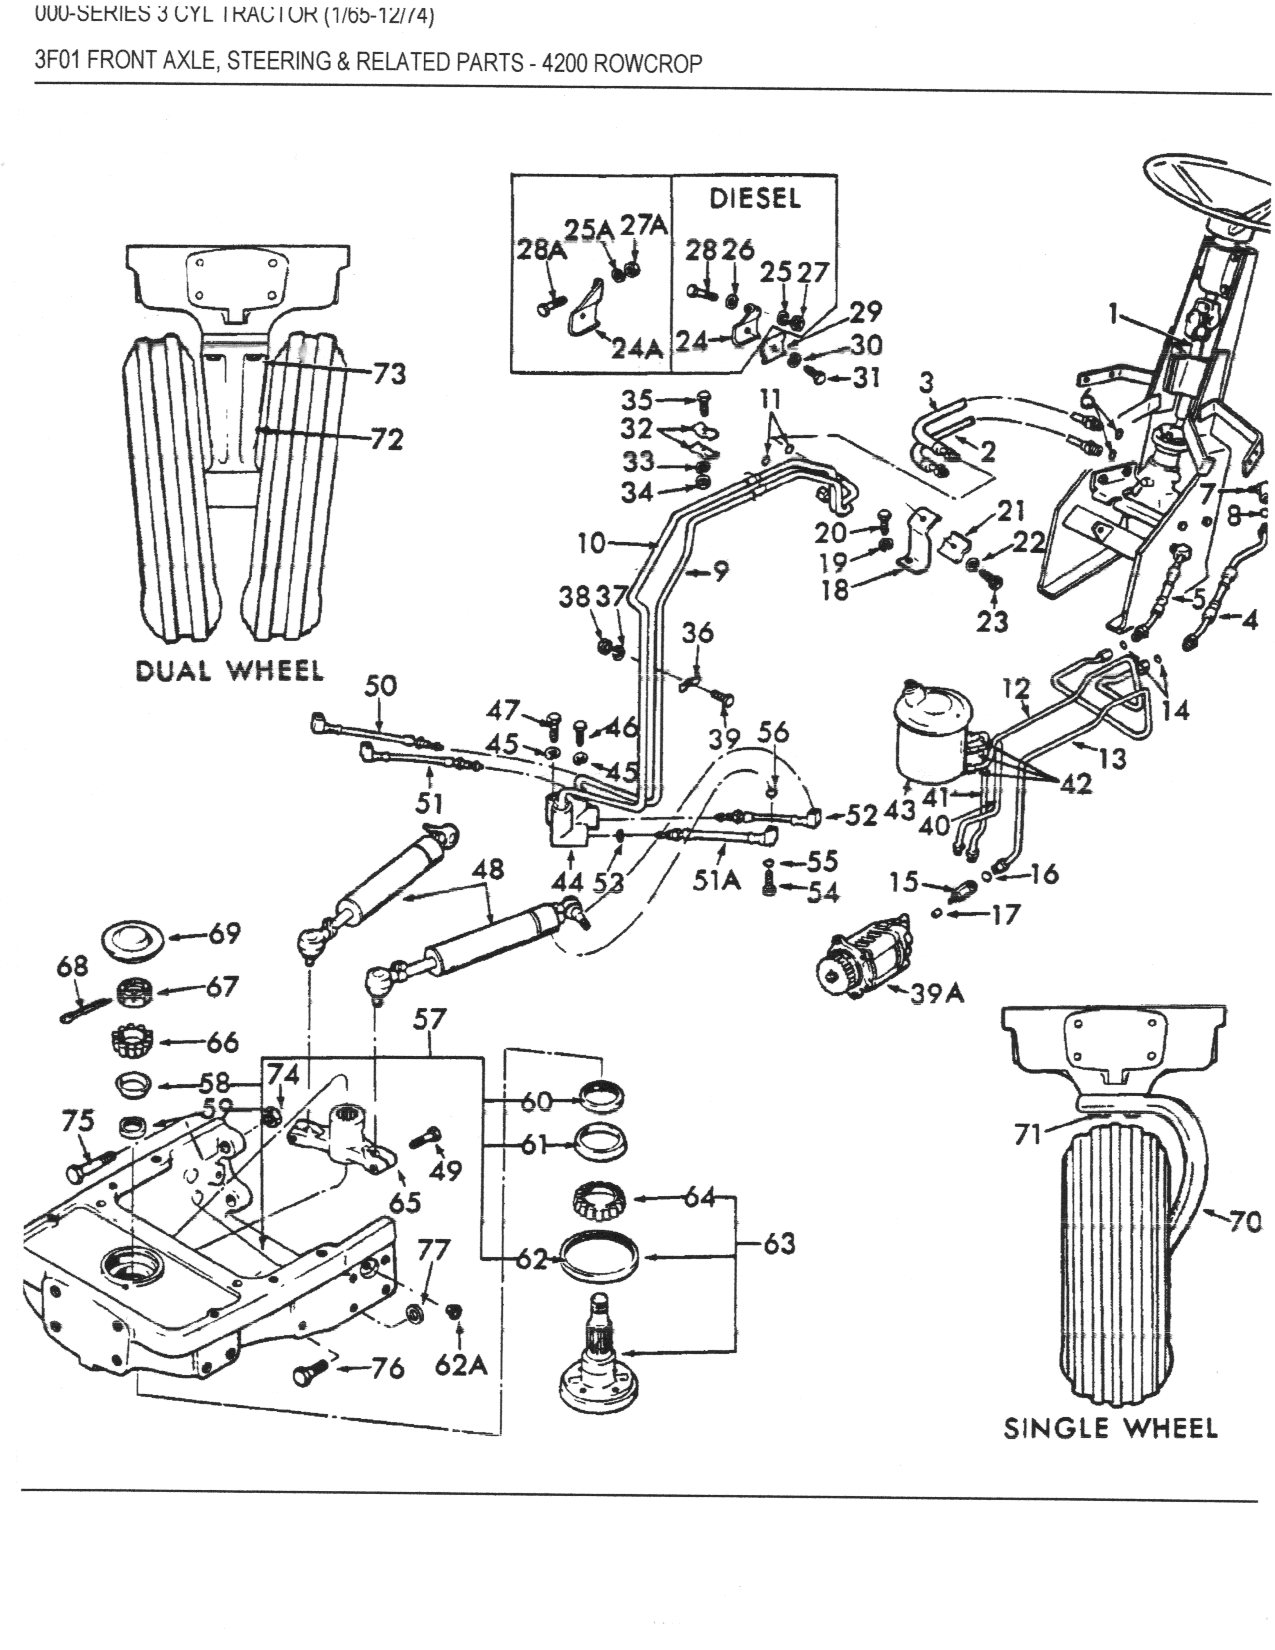 ford 5000 tractor ke diagram  ford  free engine image for